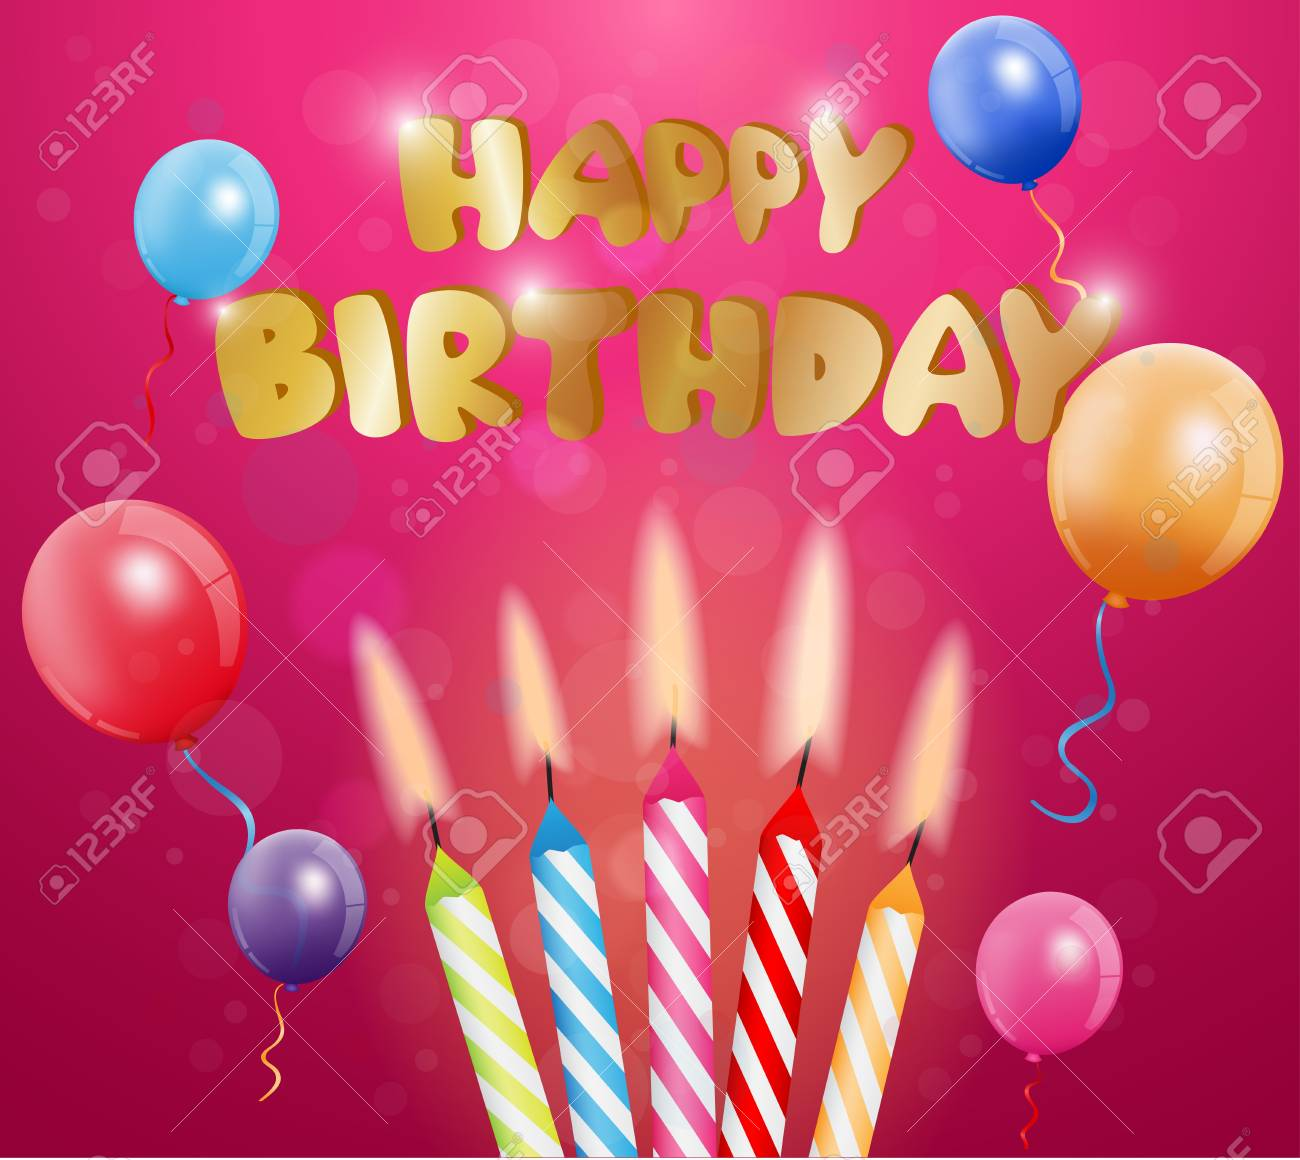 Happy Birthday Greetings Card Royalty Free Cliparts Vectors And